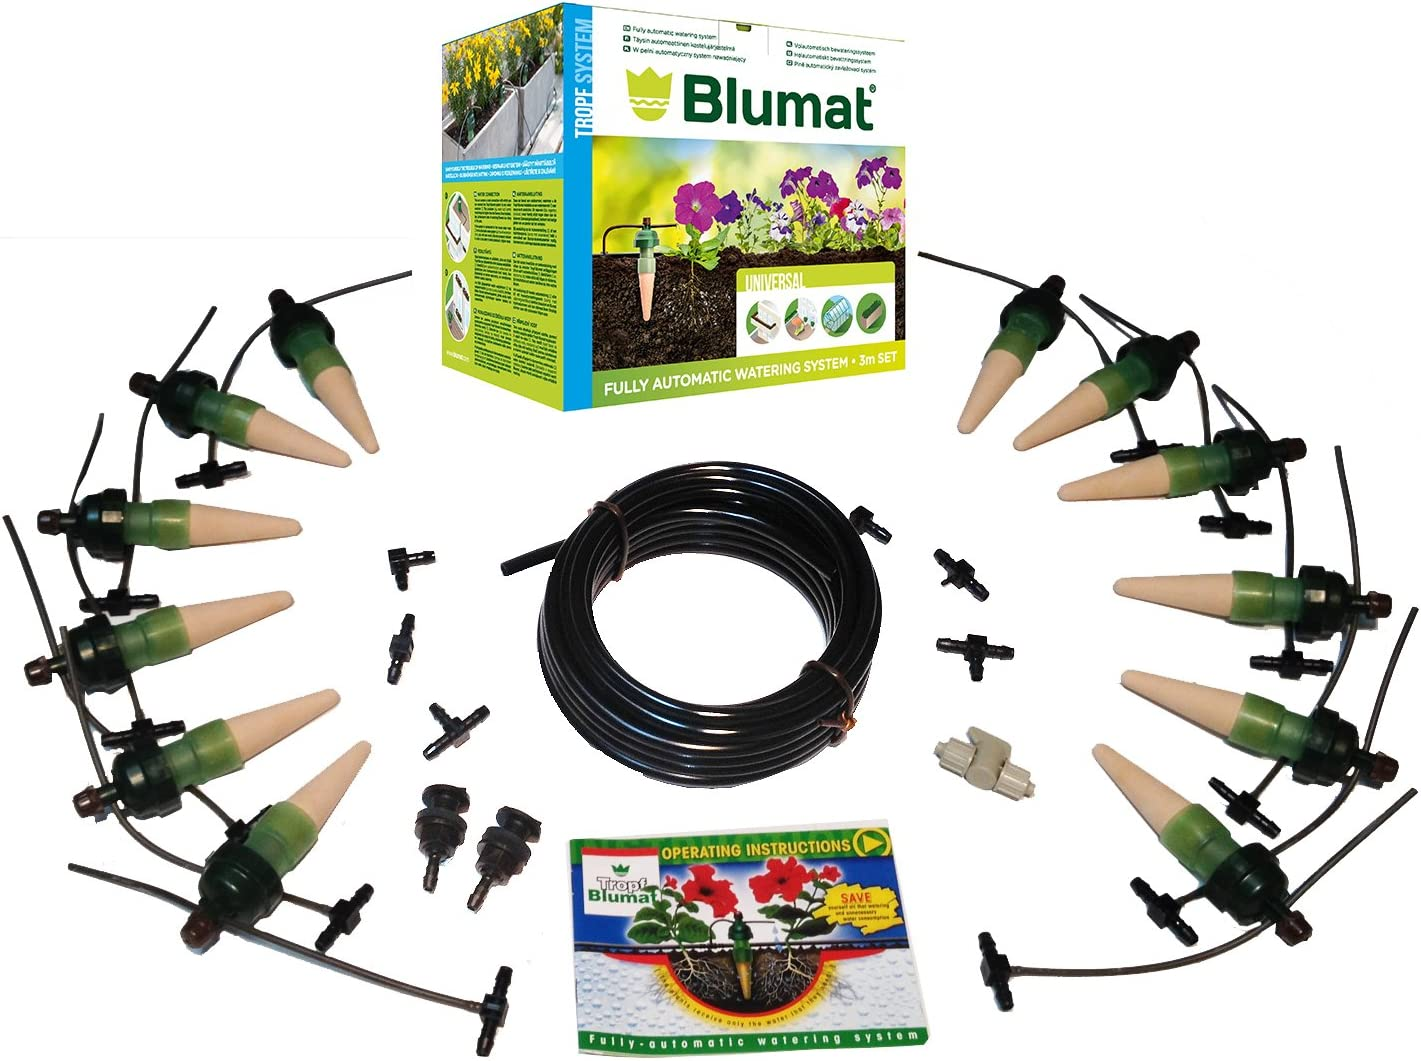 Blumat (TROPF Medium Deluxe DRIP Irrigation KIT (12-Pack): Automatic Watering System for Outdoor Plants, Planters, and Decks